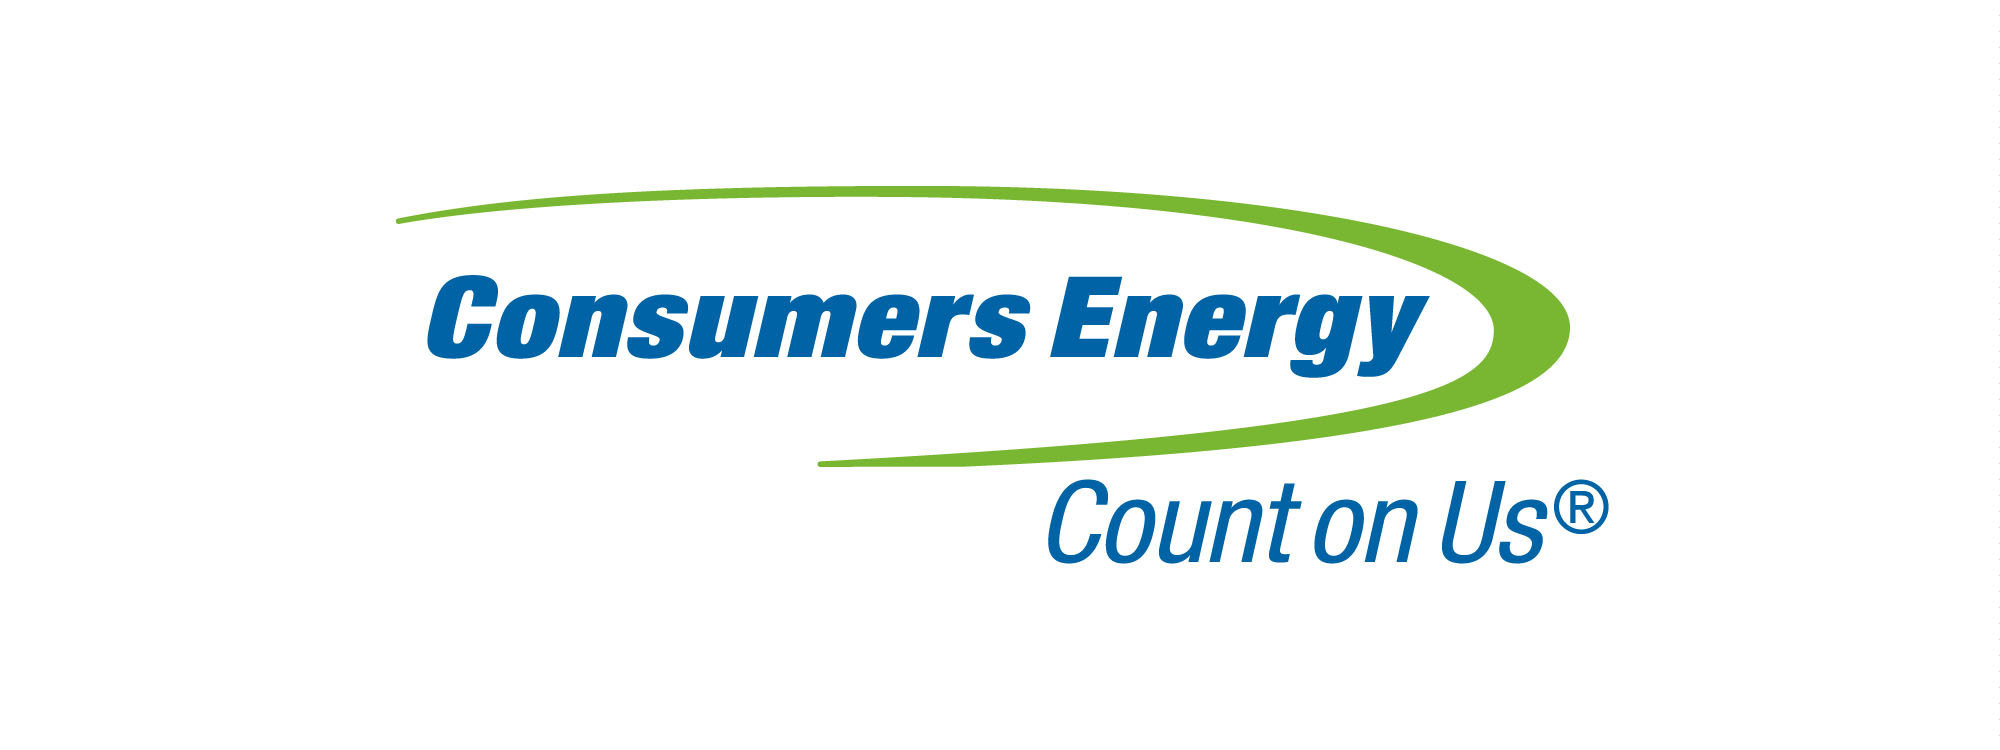 Consumers Energy Helps Over 1,300 Nonprofit Organizations ...